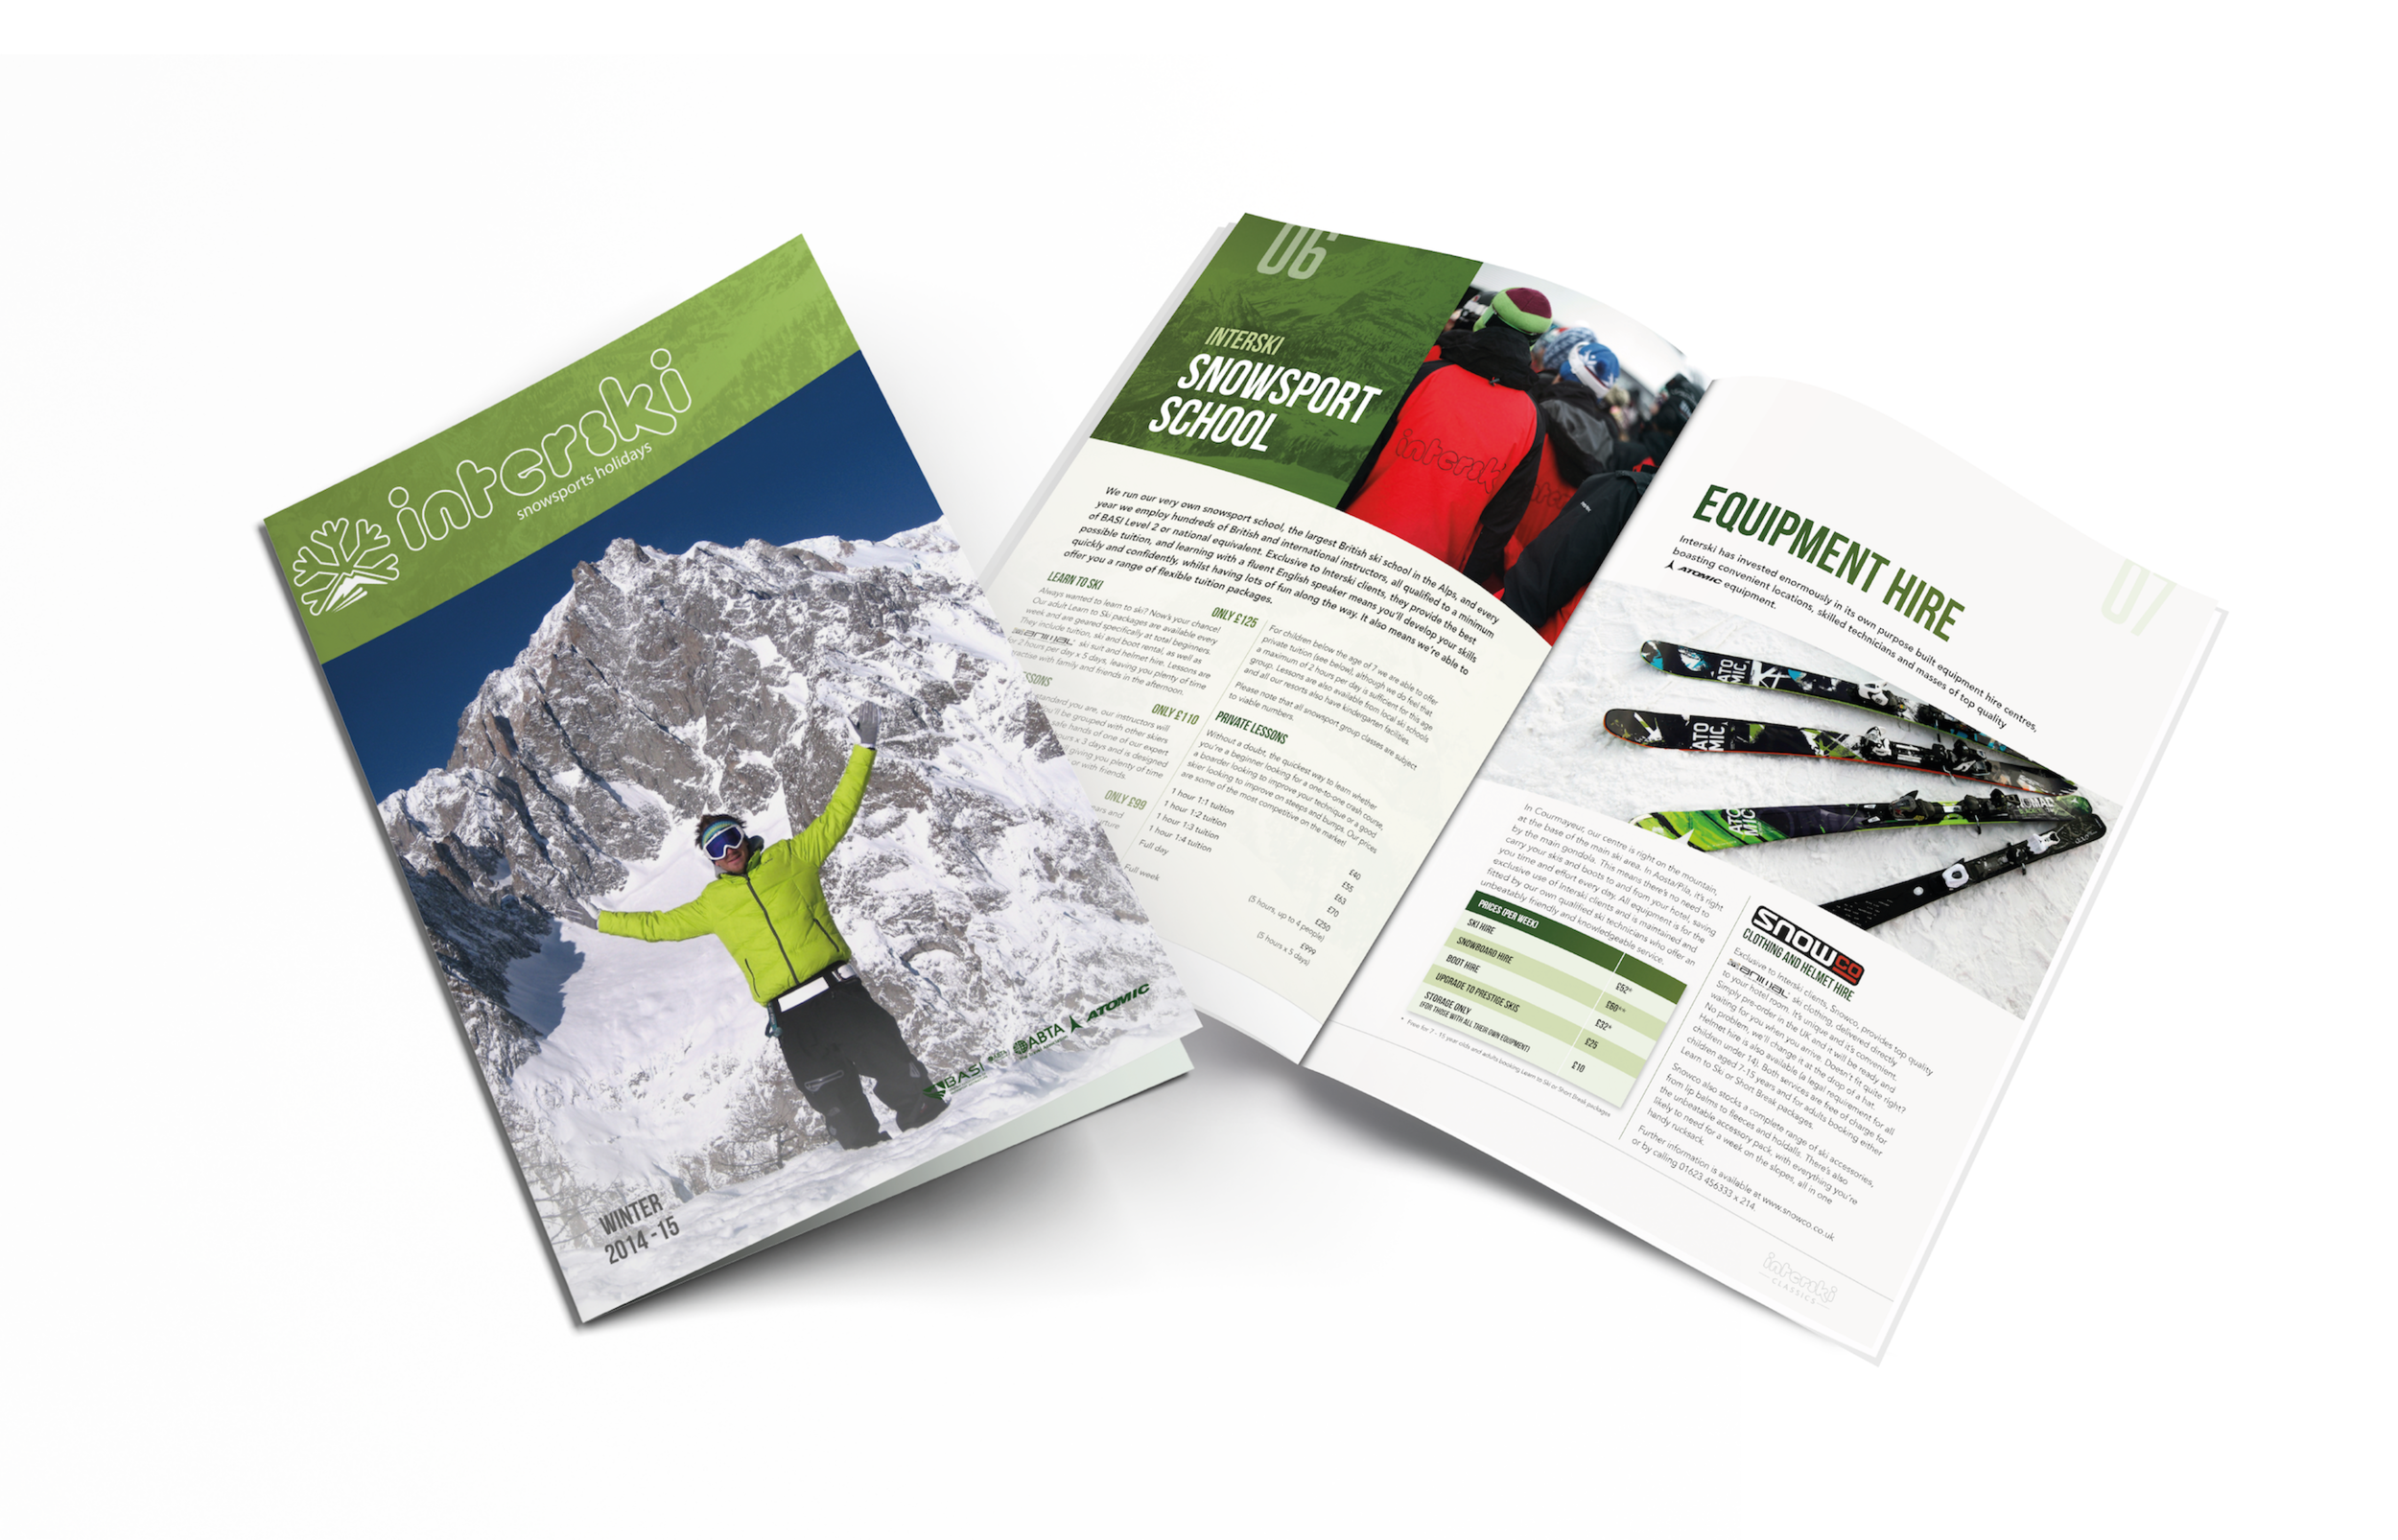 2014/15 Skiing Holiday Brochure Design for Interski, a Snowsports Holiday Company